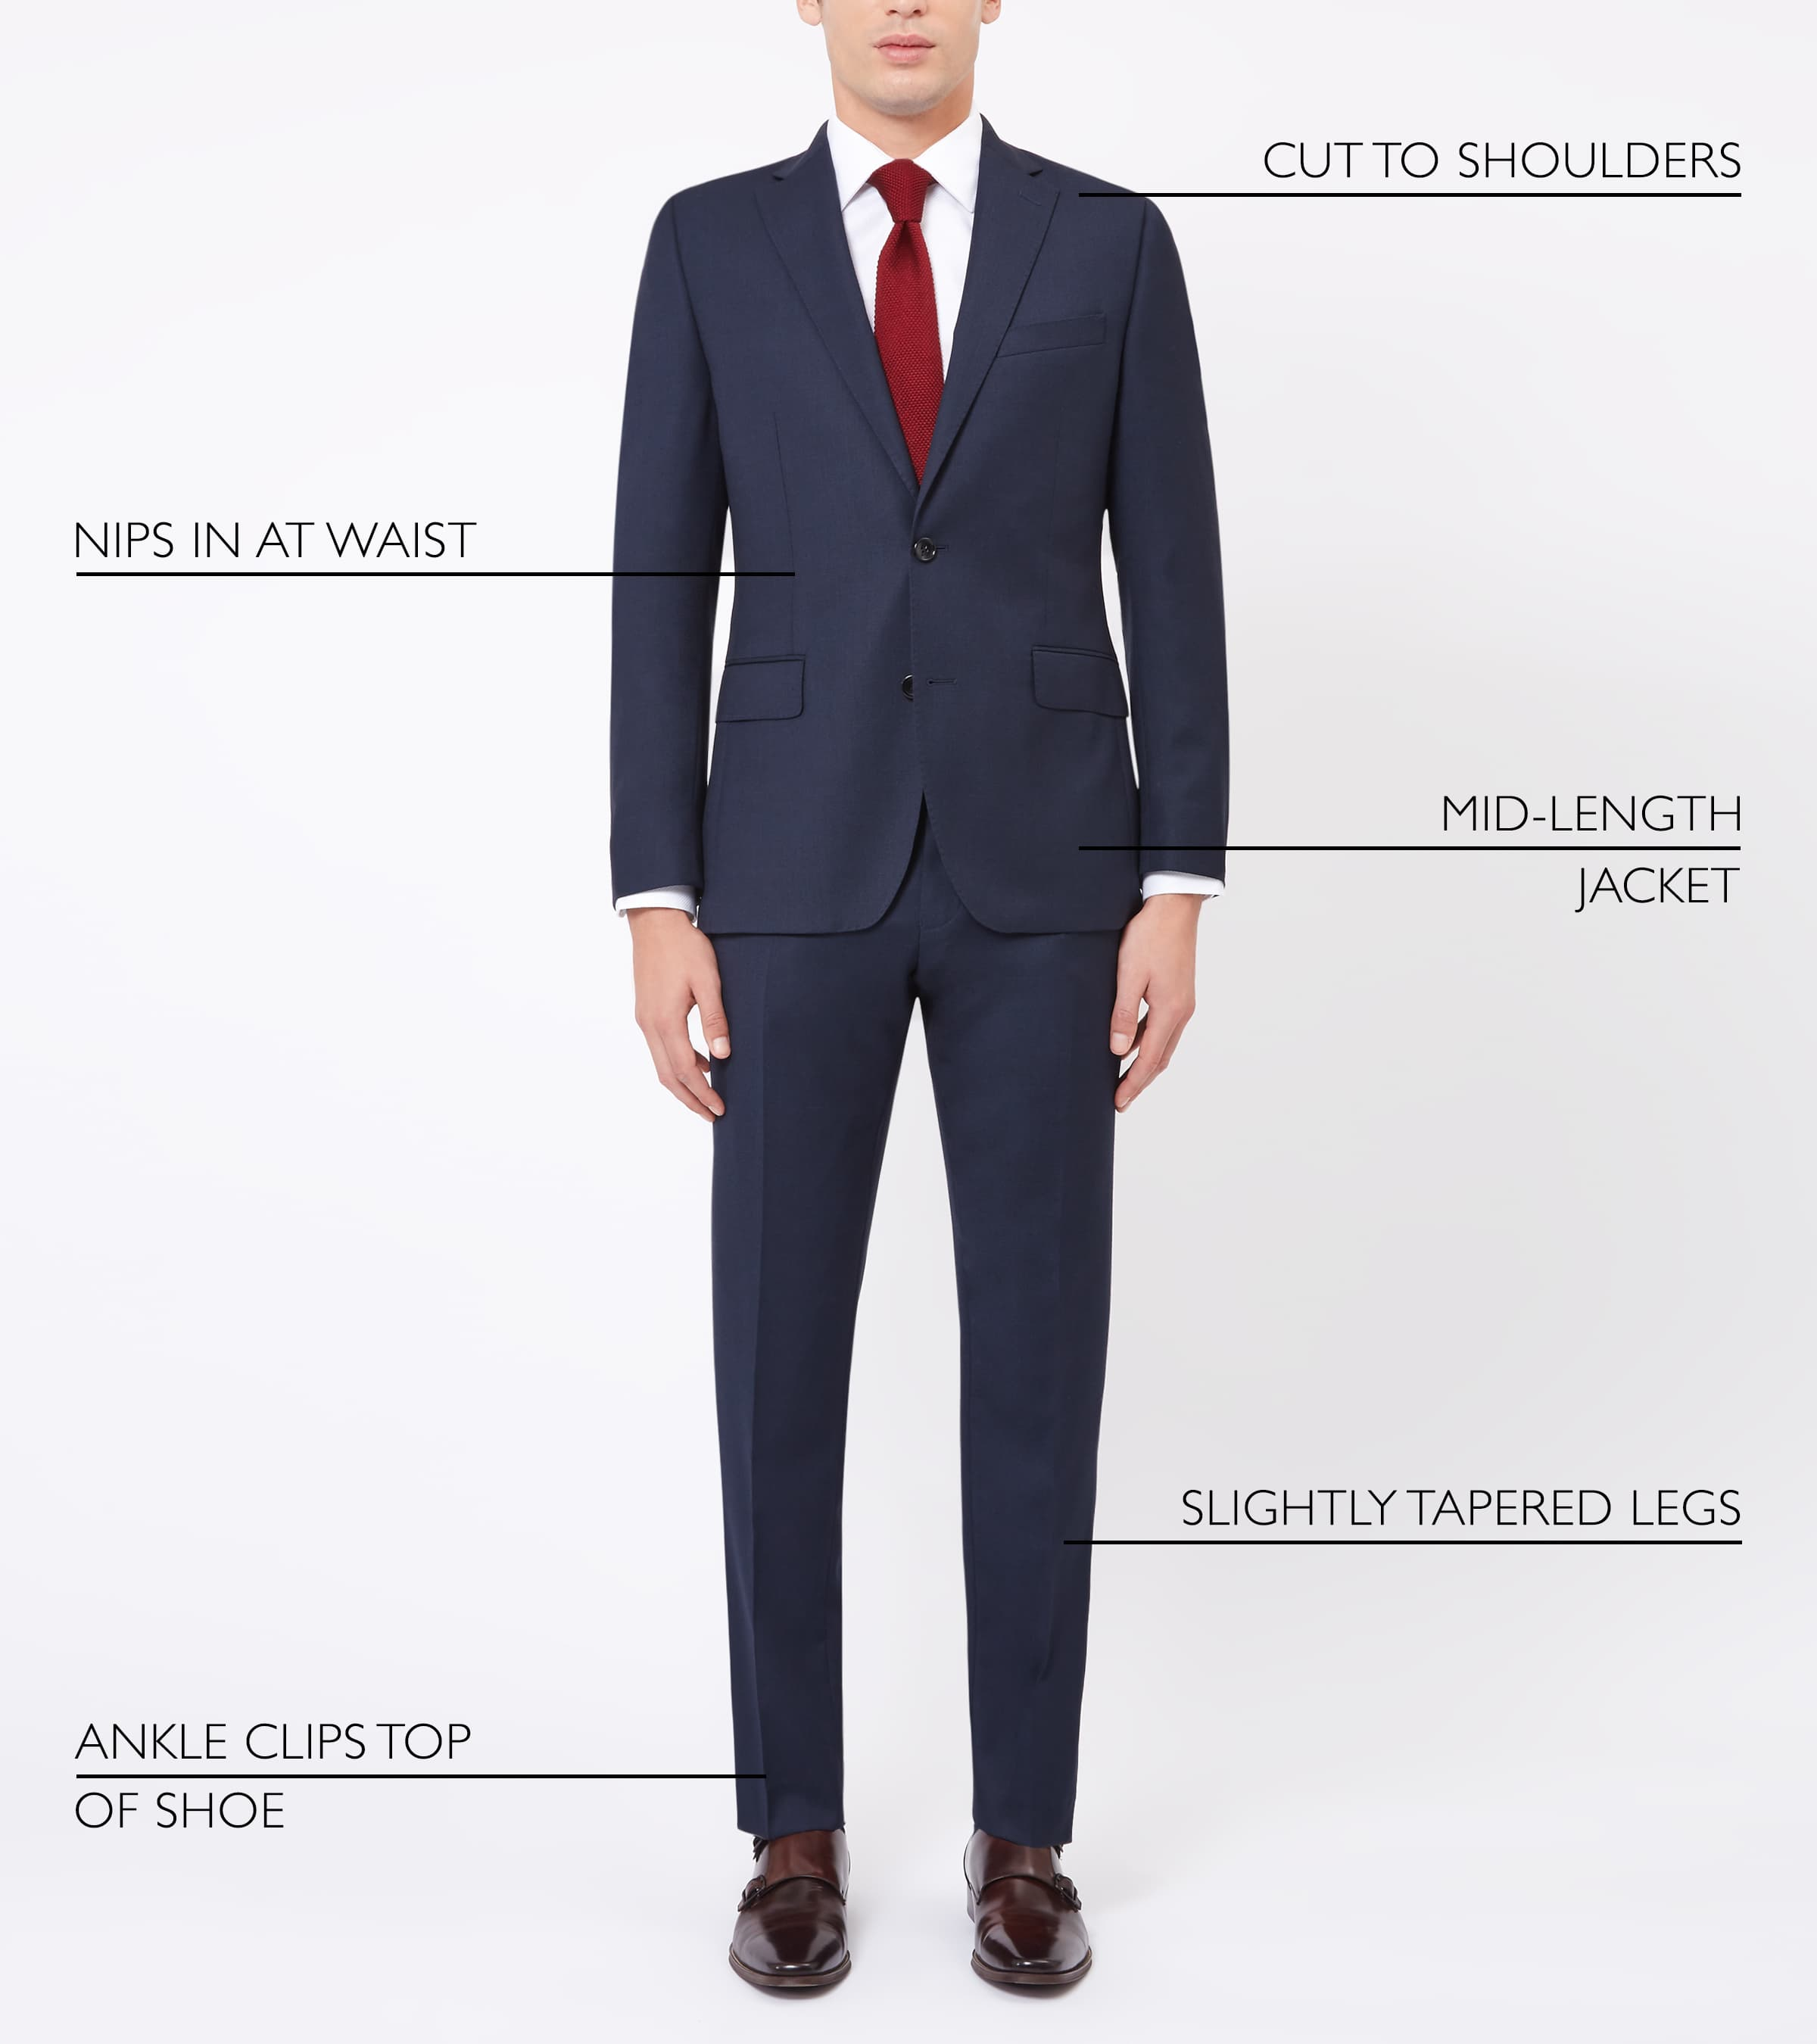 Suits in size 50: high quality for unparalleled comfort